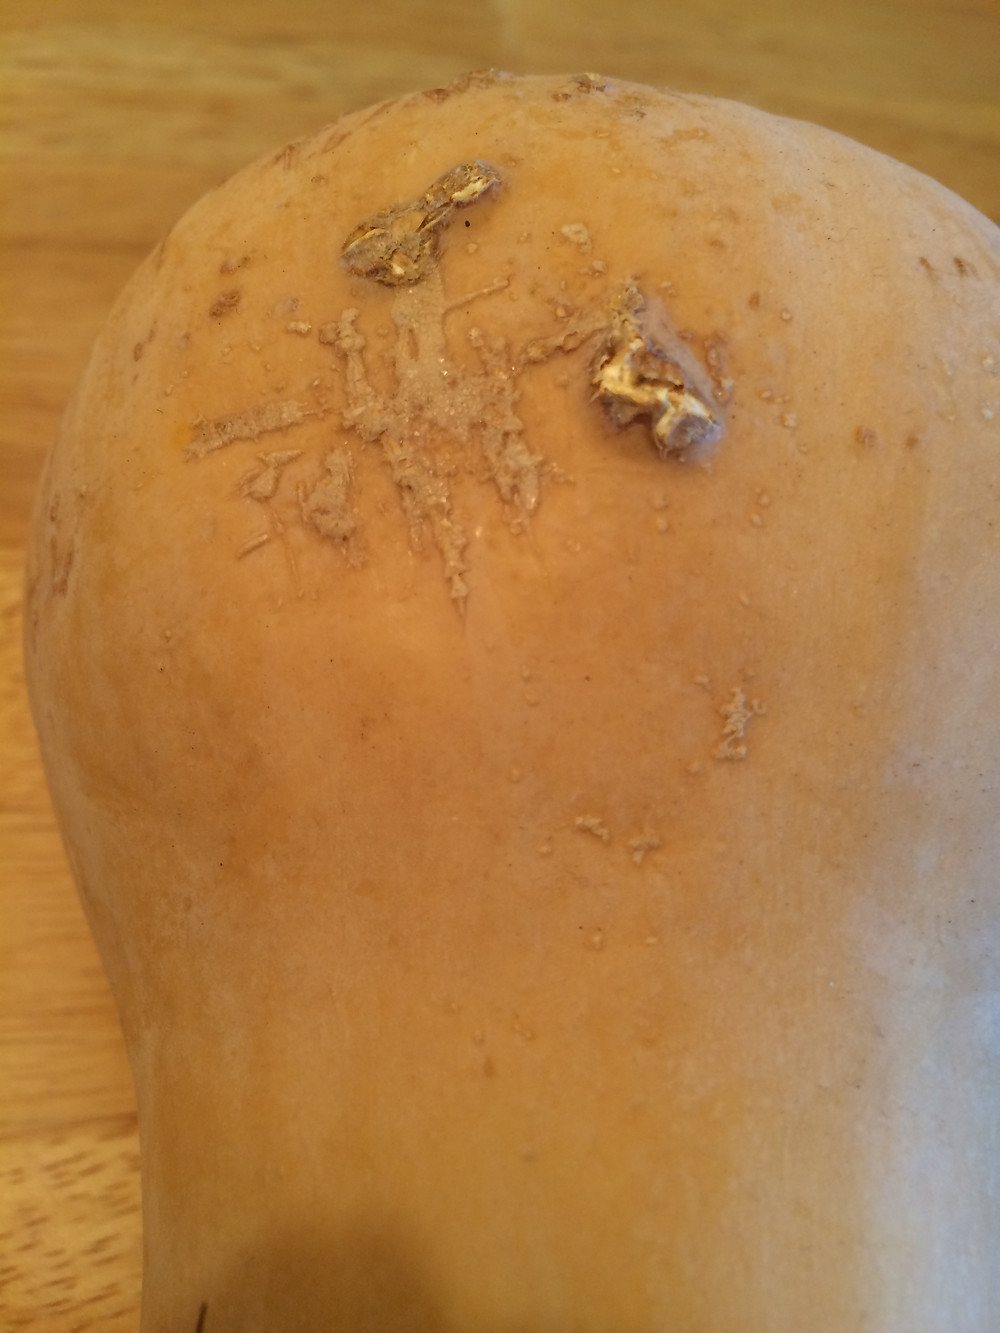 Squash with scars that resemble dirt